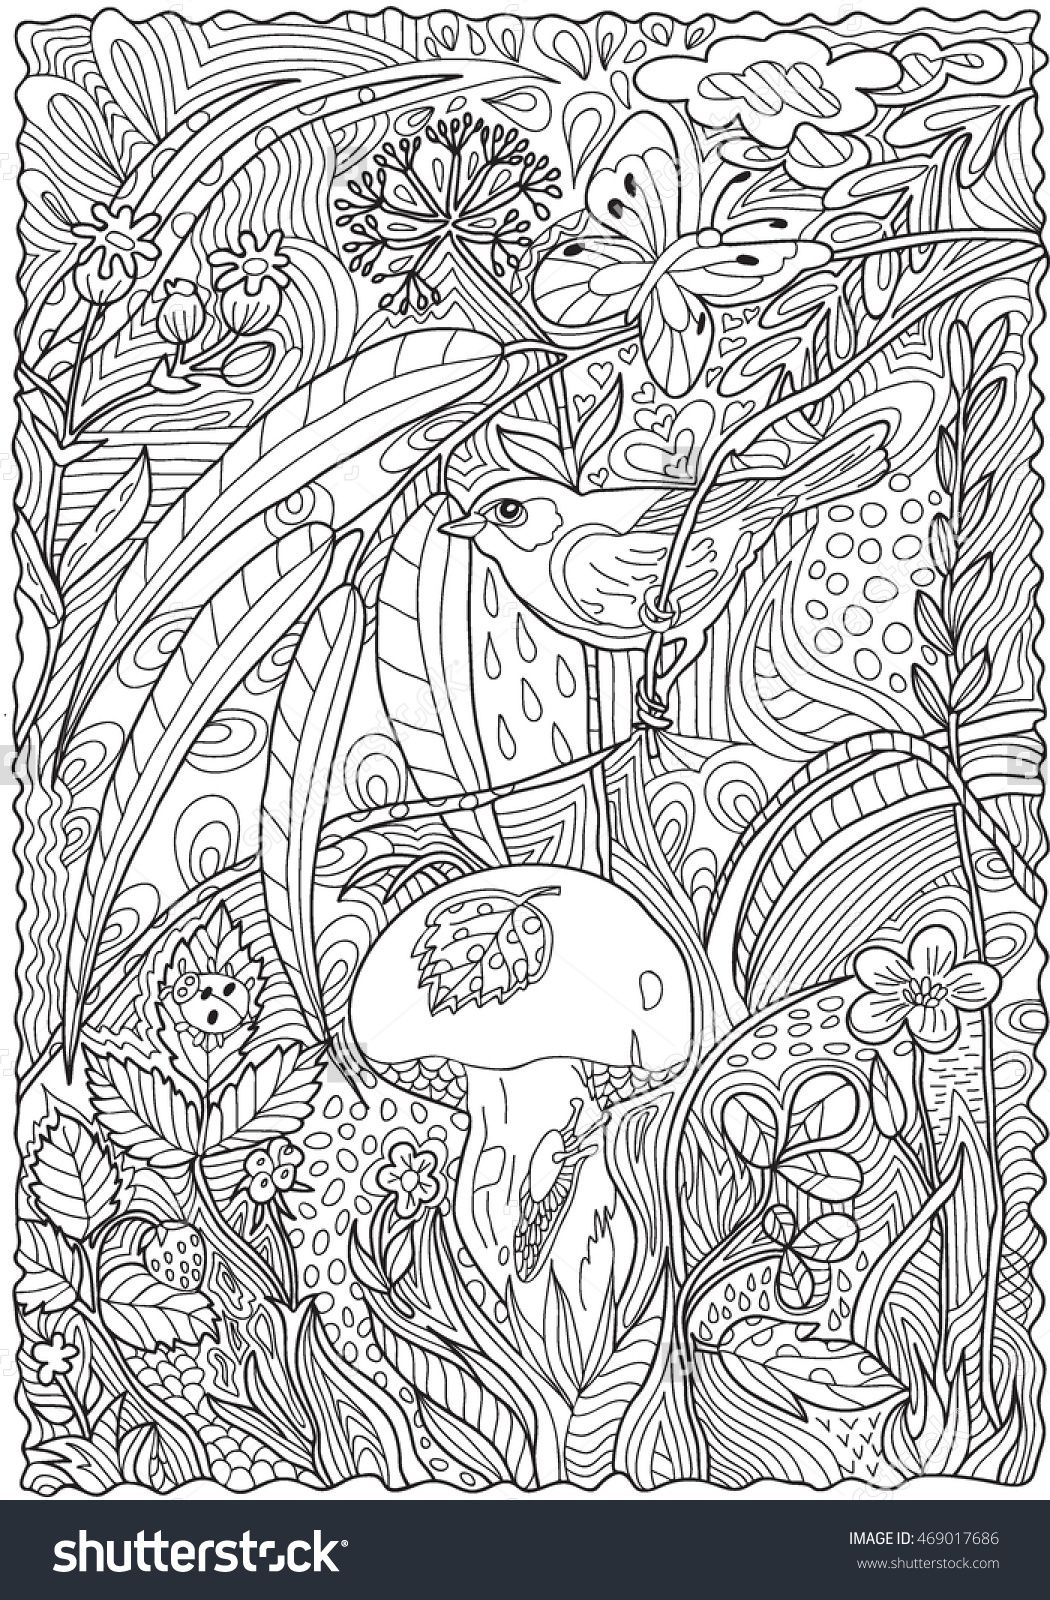 Pattern for coloring book Hand drawn Adults Black and white Floral